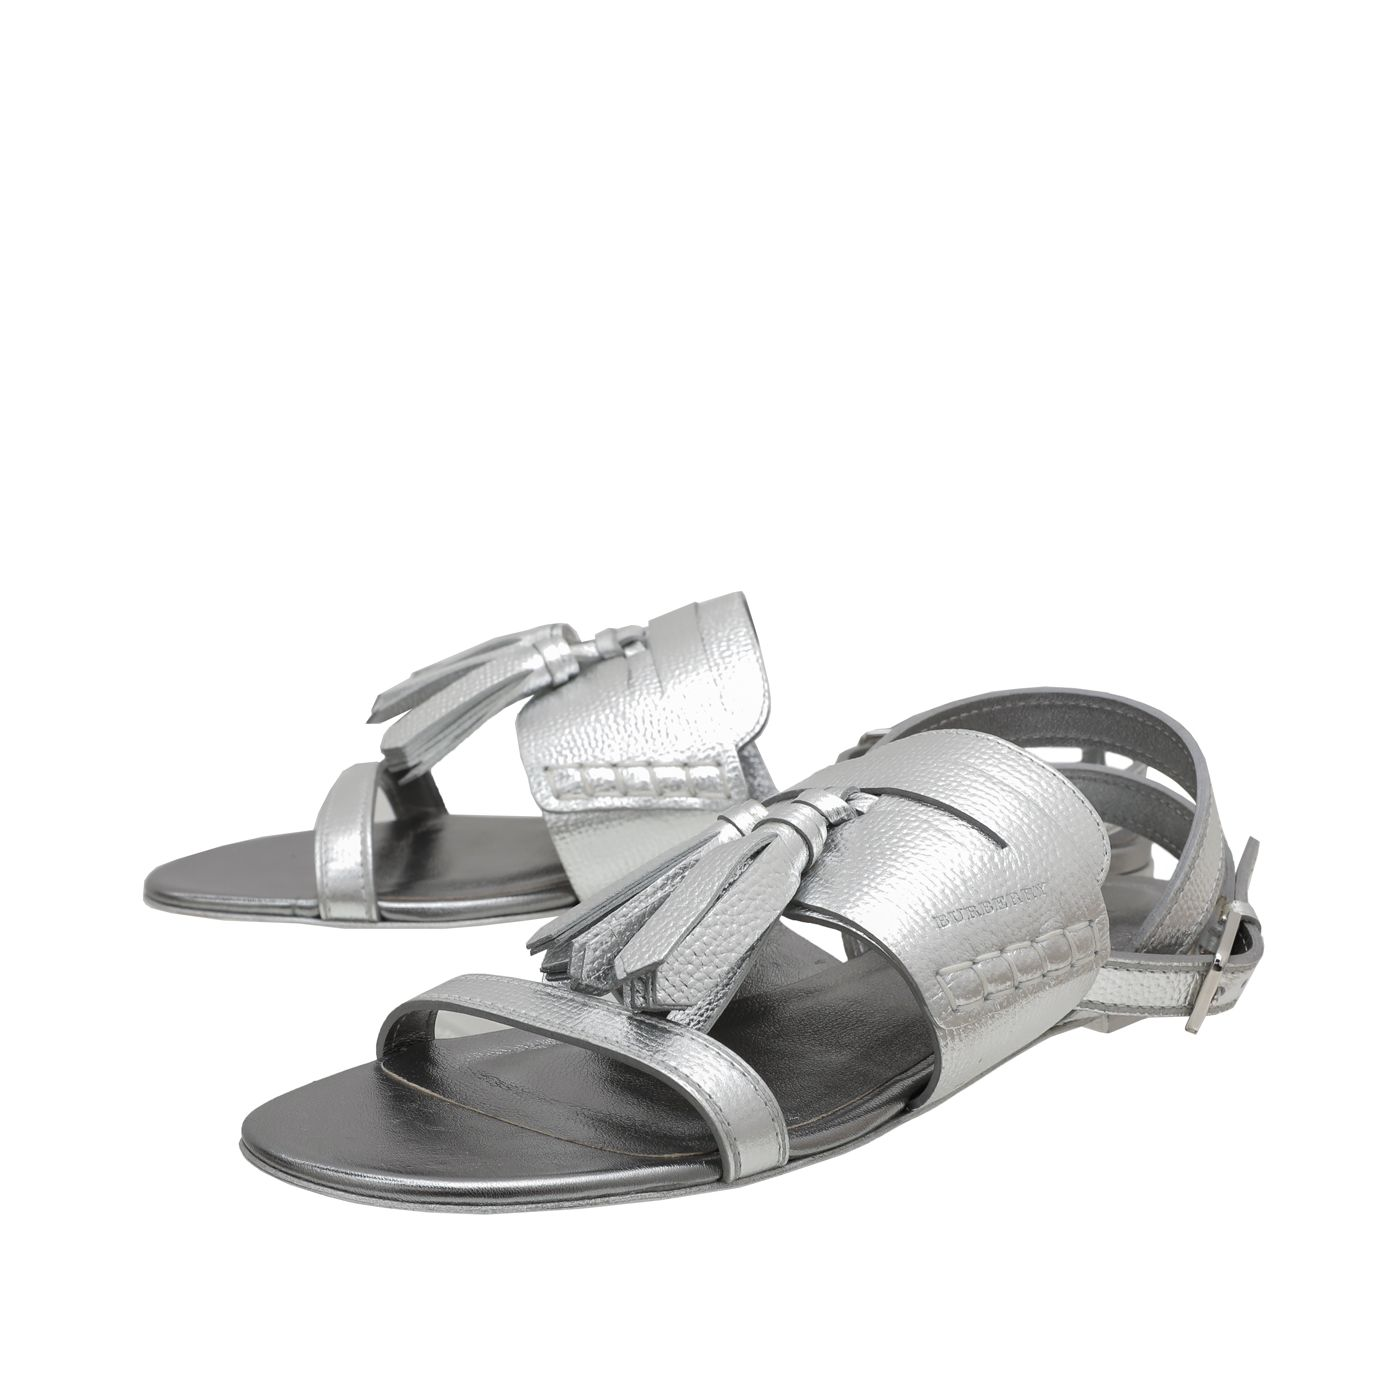 Burberry Silver Bethany Flat Sandals 38.5